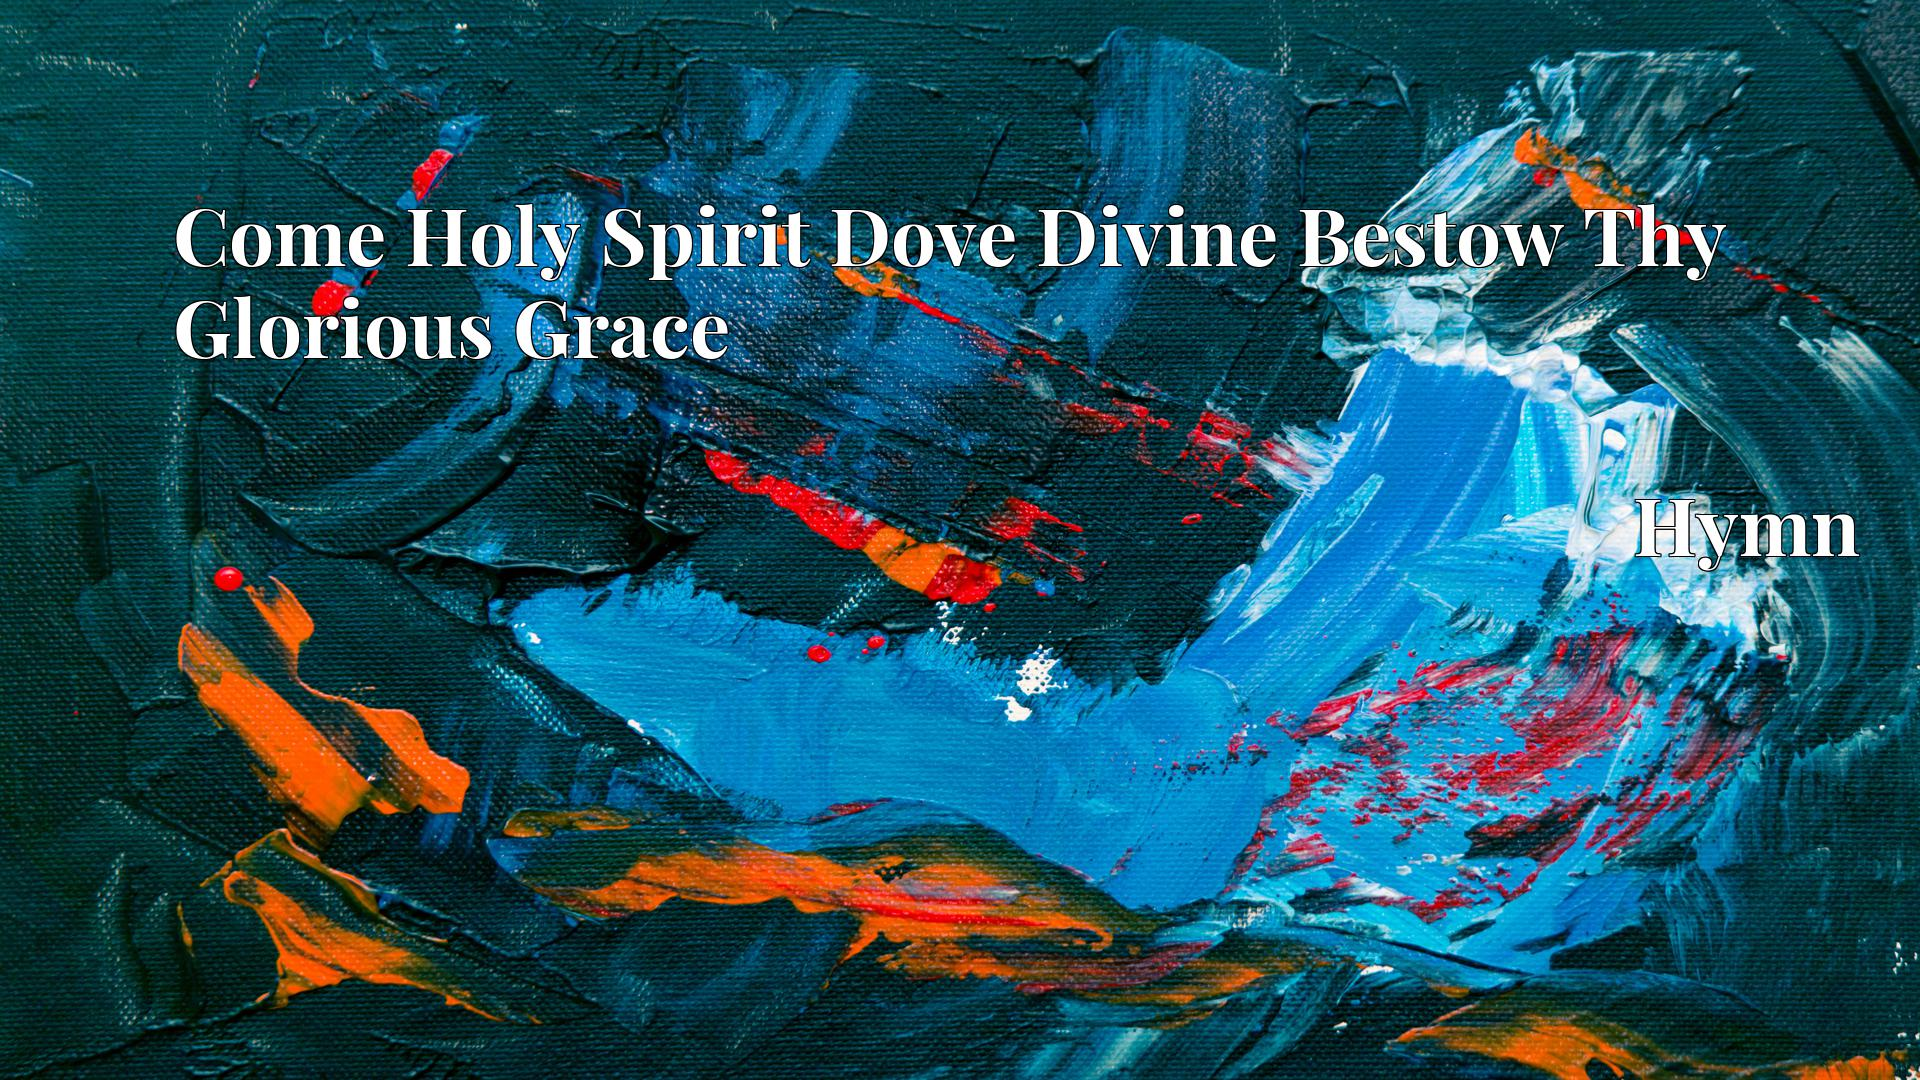 Come Holy Spirit Dove Divine Bestow Thy Glorious Grace - Hymn